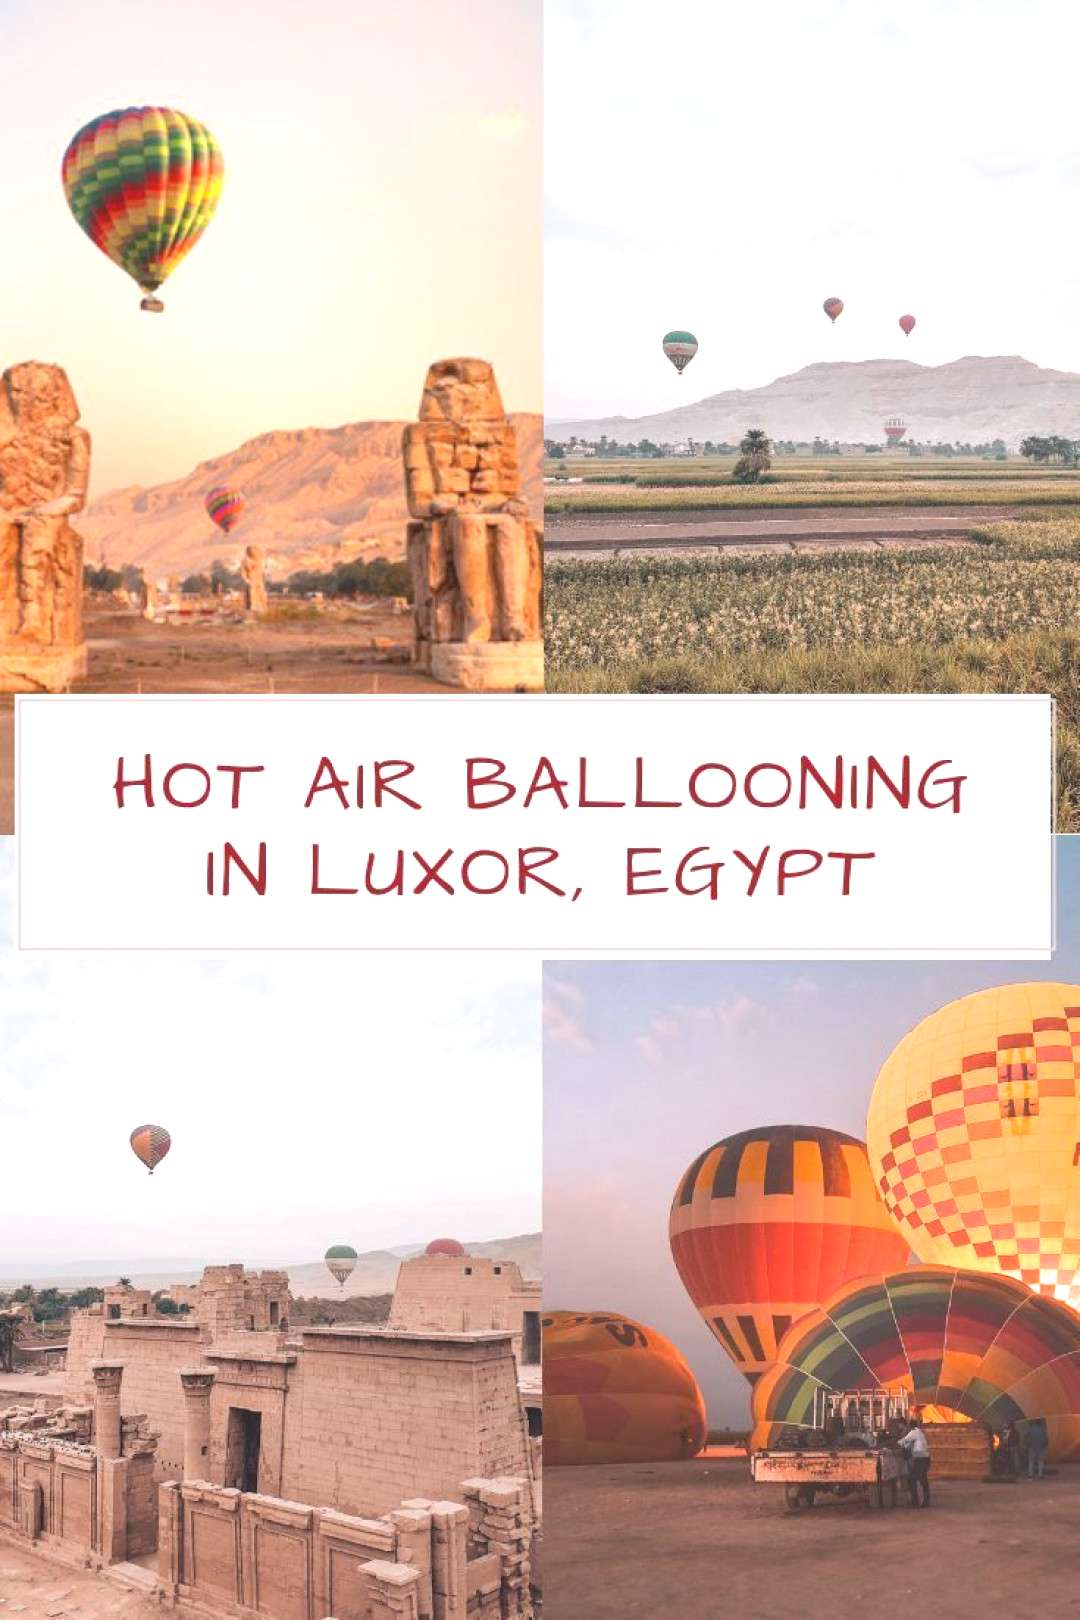 Guide to Hot Air Ballooning in Luxor [+Videos] - HOT AIR BALLOONING IN LUXOR EGYPT Everything you